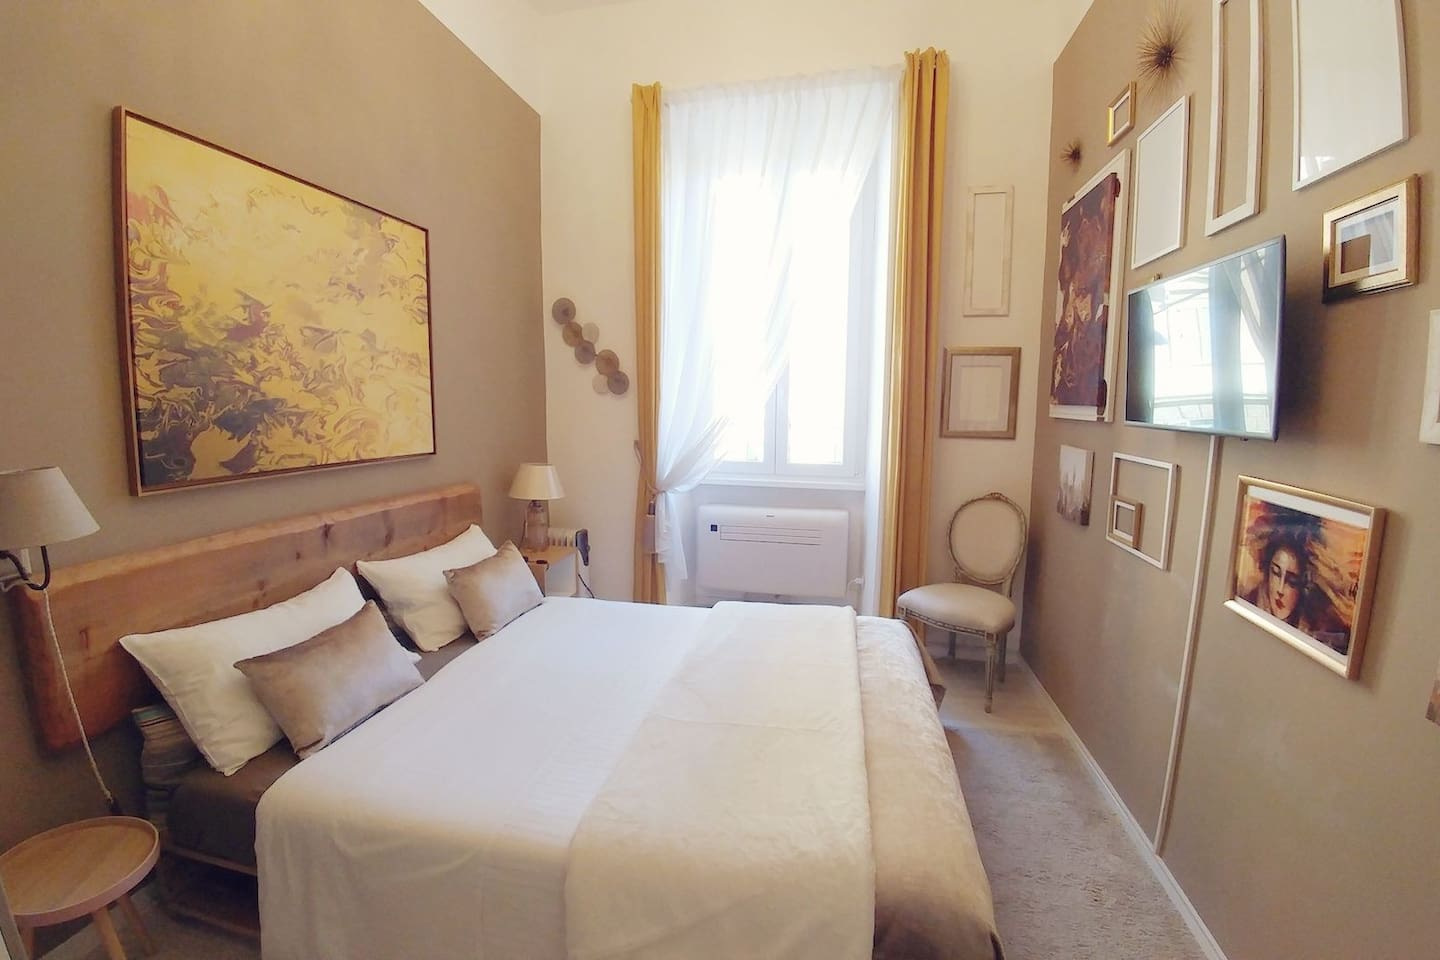 Huge and Bright Double Room with independet air condition system and Smart TV System connected to Fibra Heigh Speed WiFi. Room has window and very is Bright.